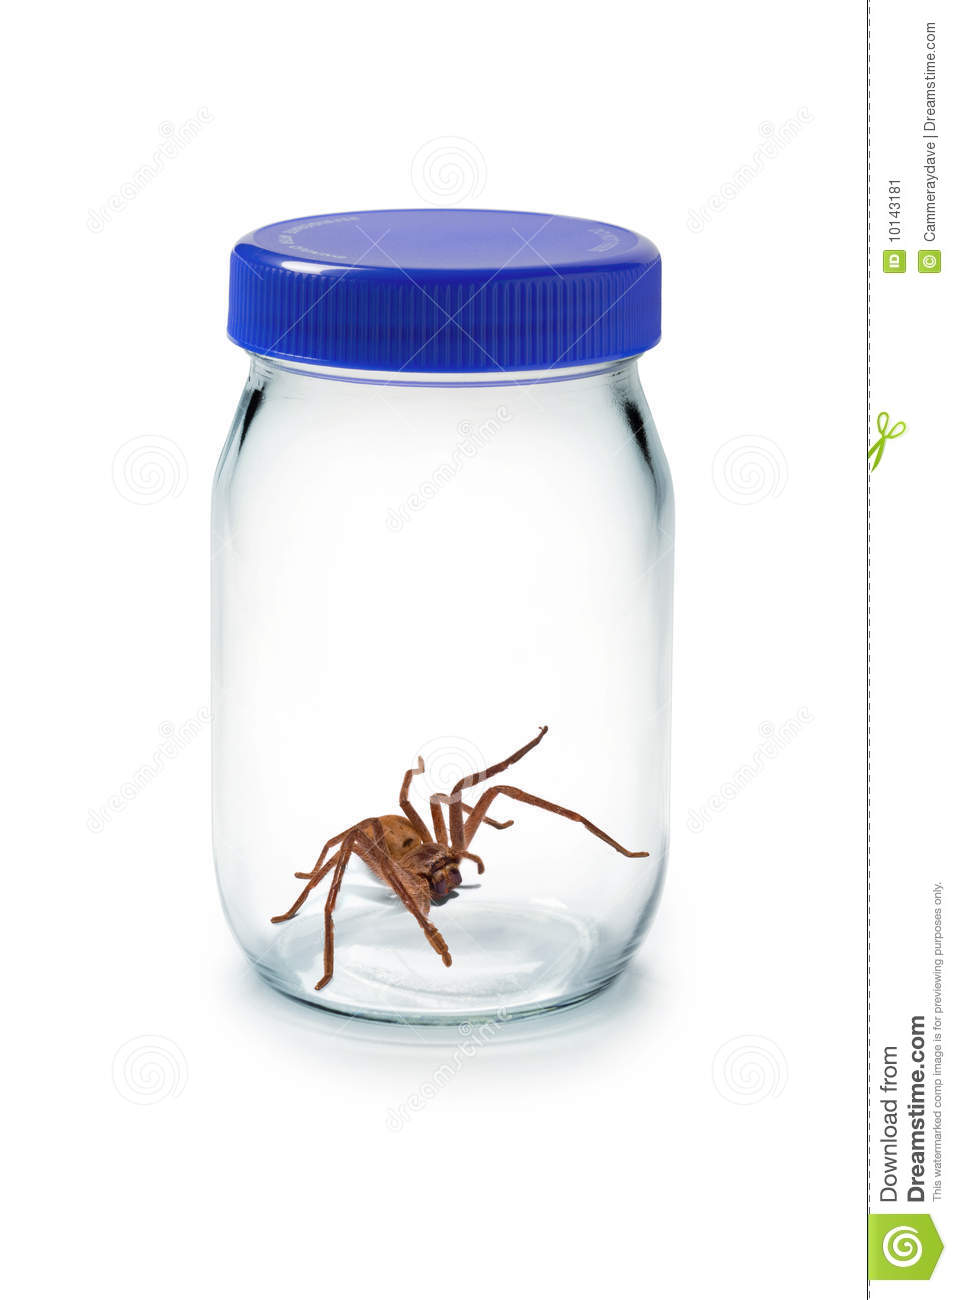 59 Bug Insect Glass Jar Photos - Free & Royalty-Free Stock Photos from  Dreamstime